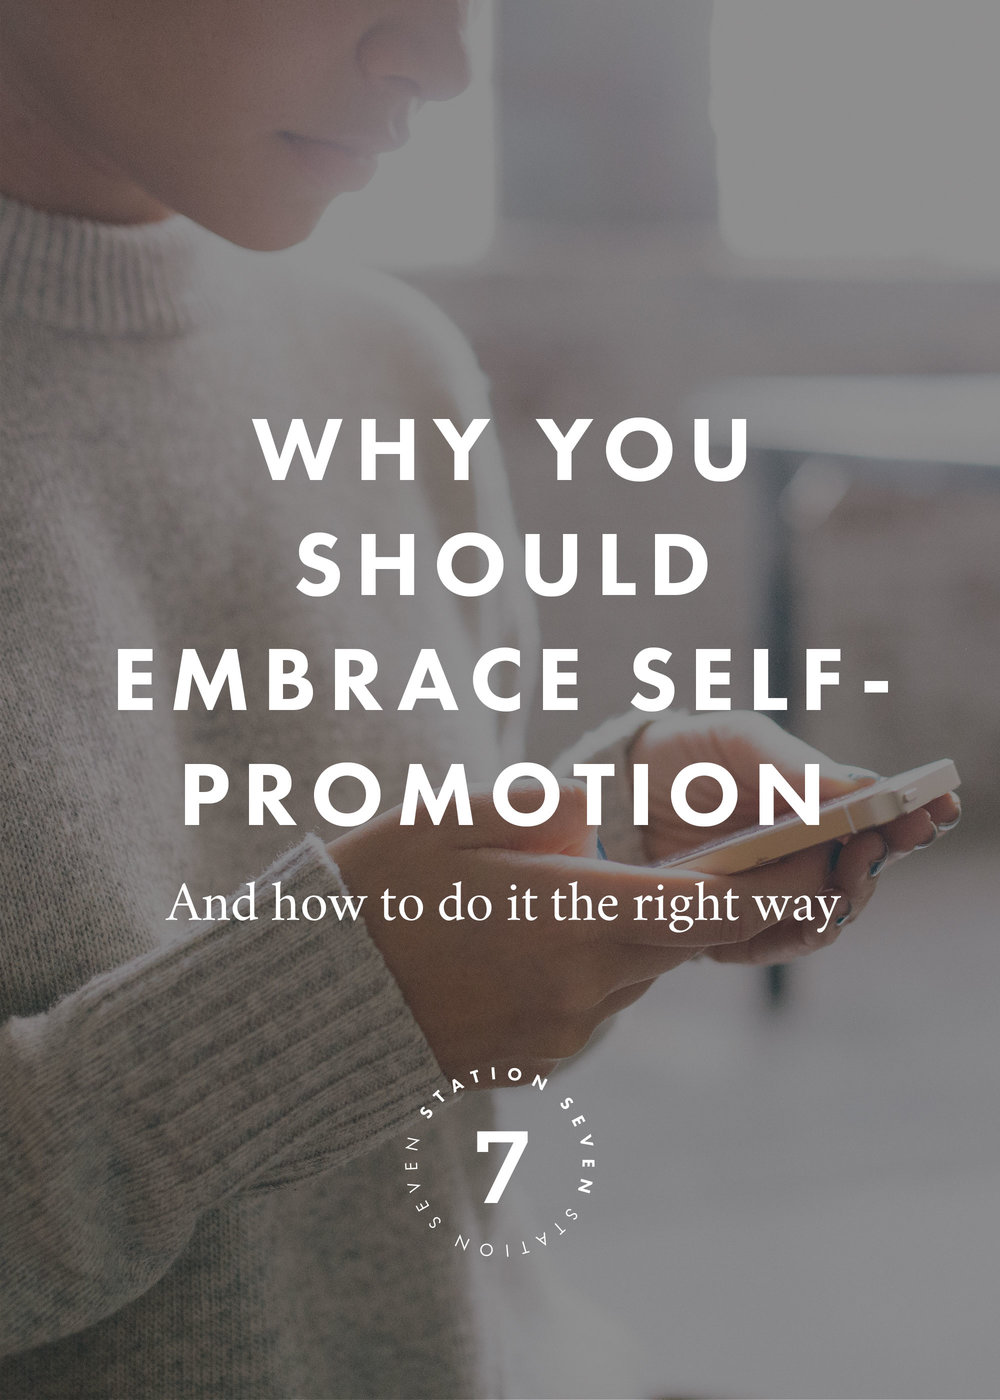 Why You Should Embrace Self-Promotion.jpeg